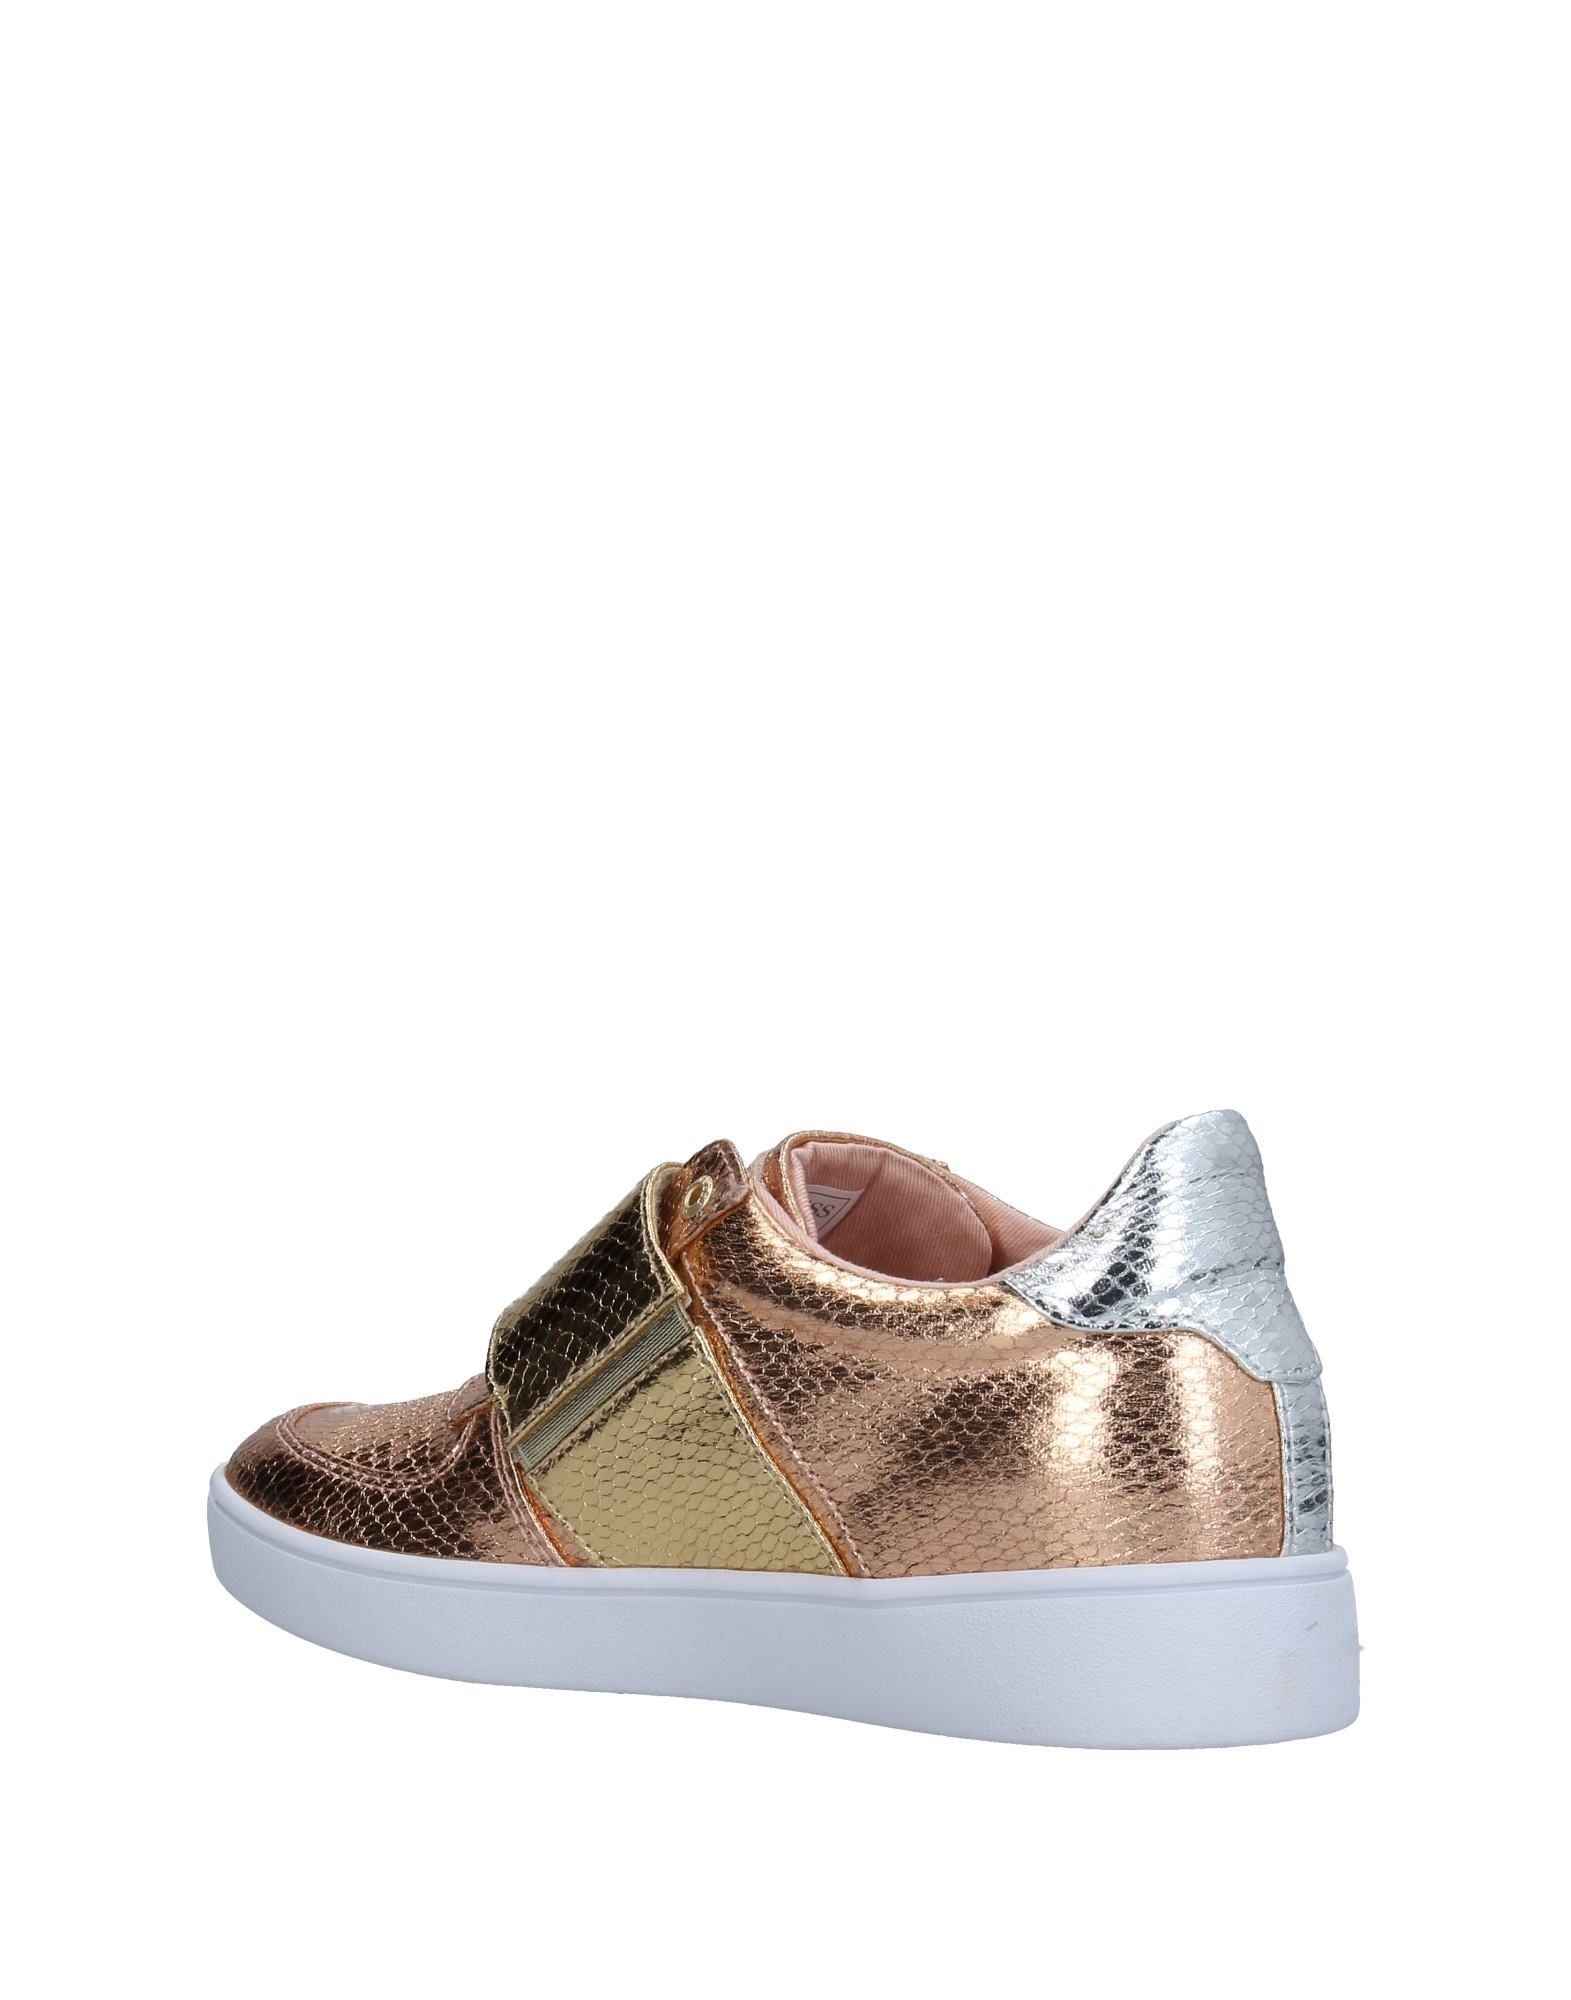 Guess Sneakers Damen   Damen 11336687PE 146151